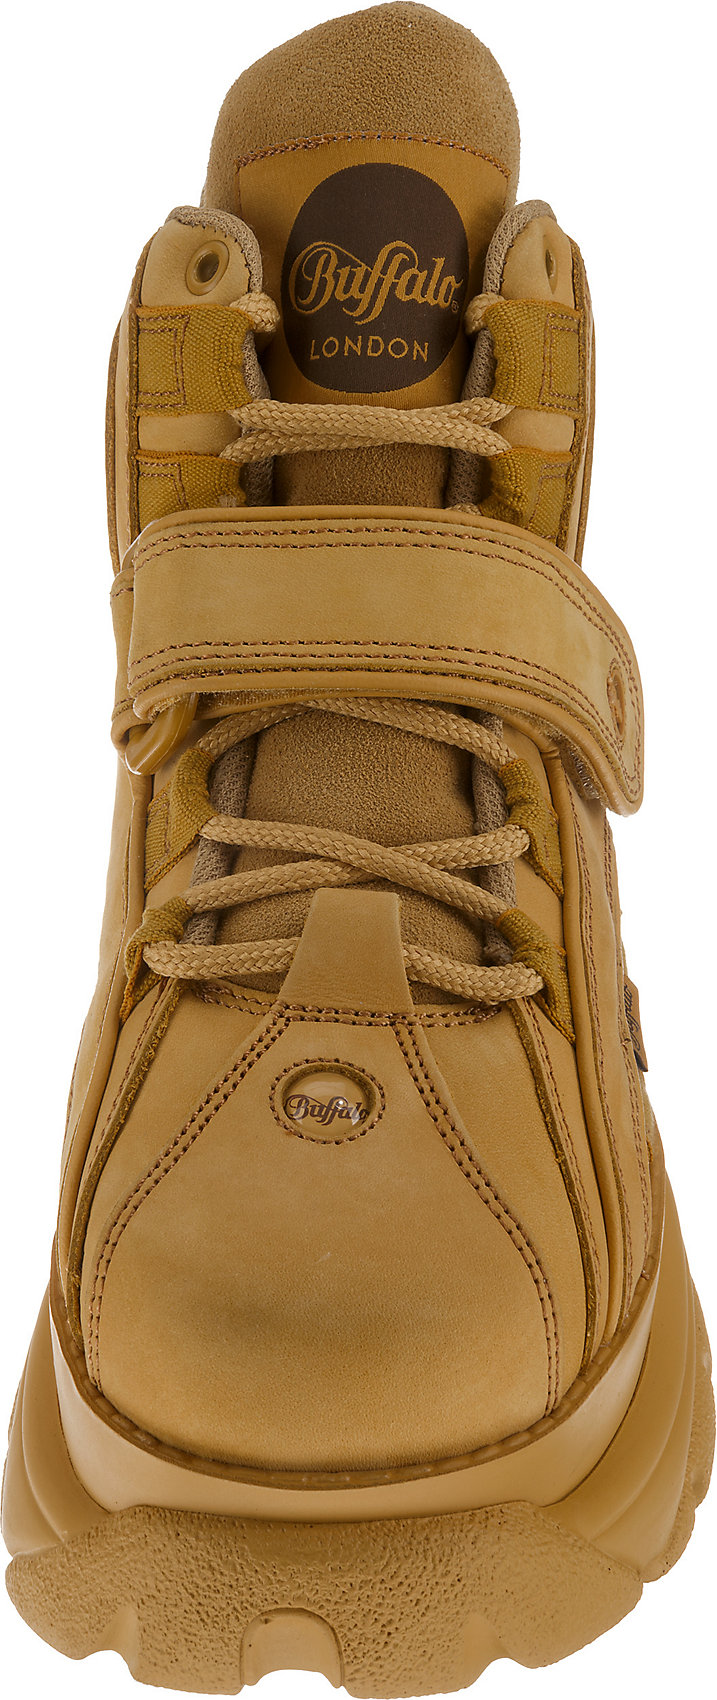 Neu Buffalo London 1534041 Sneakers High 8714811 für Damen beige weiß